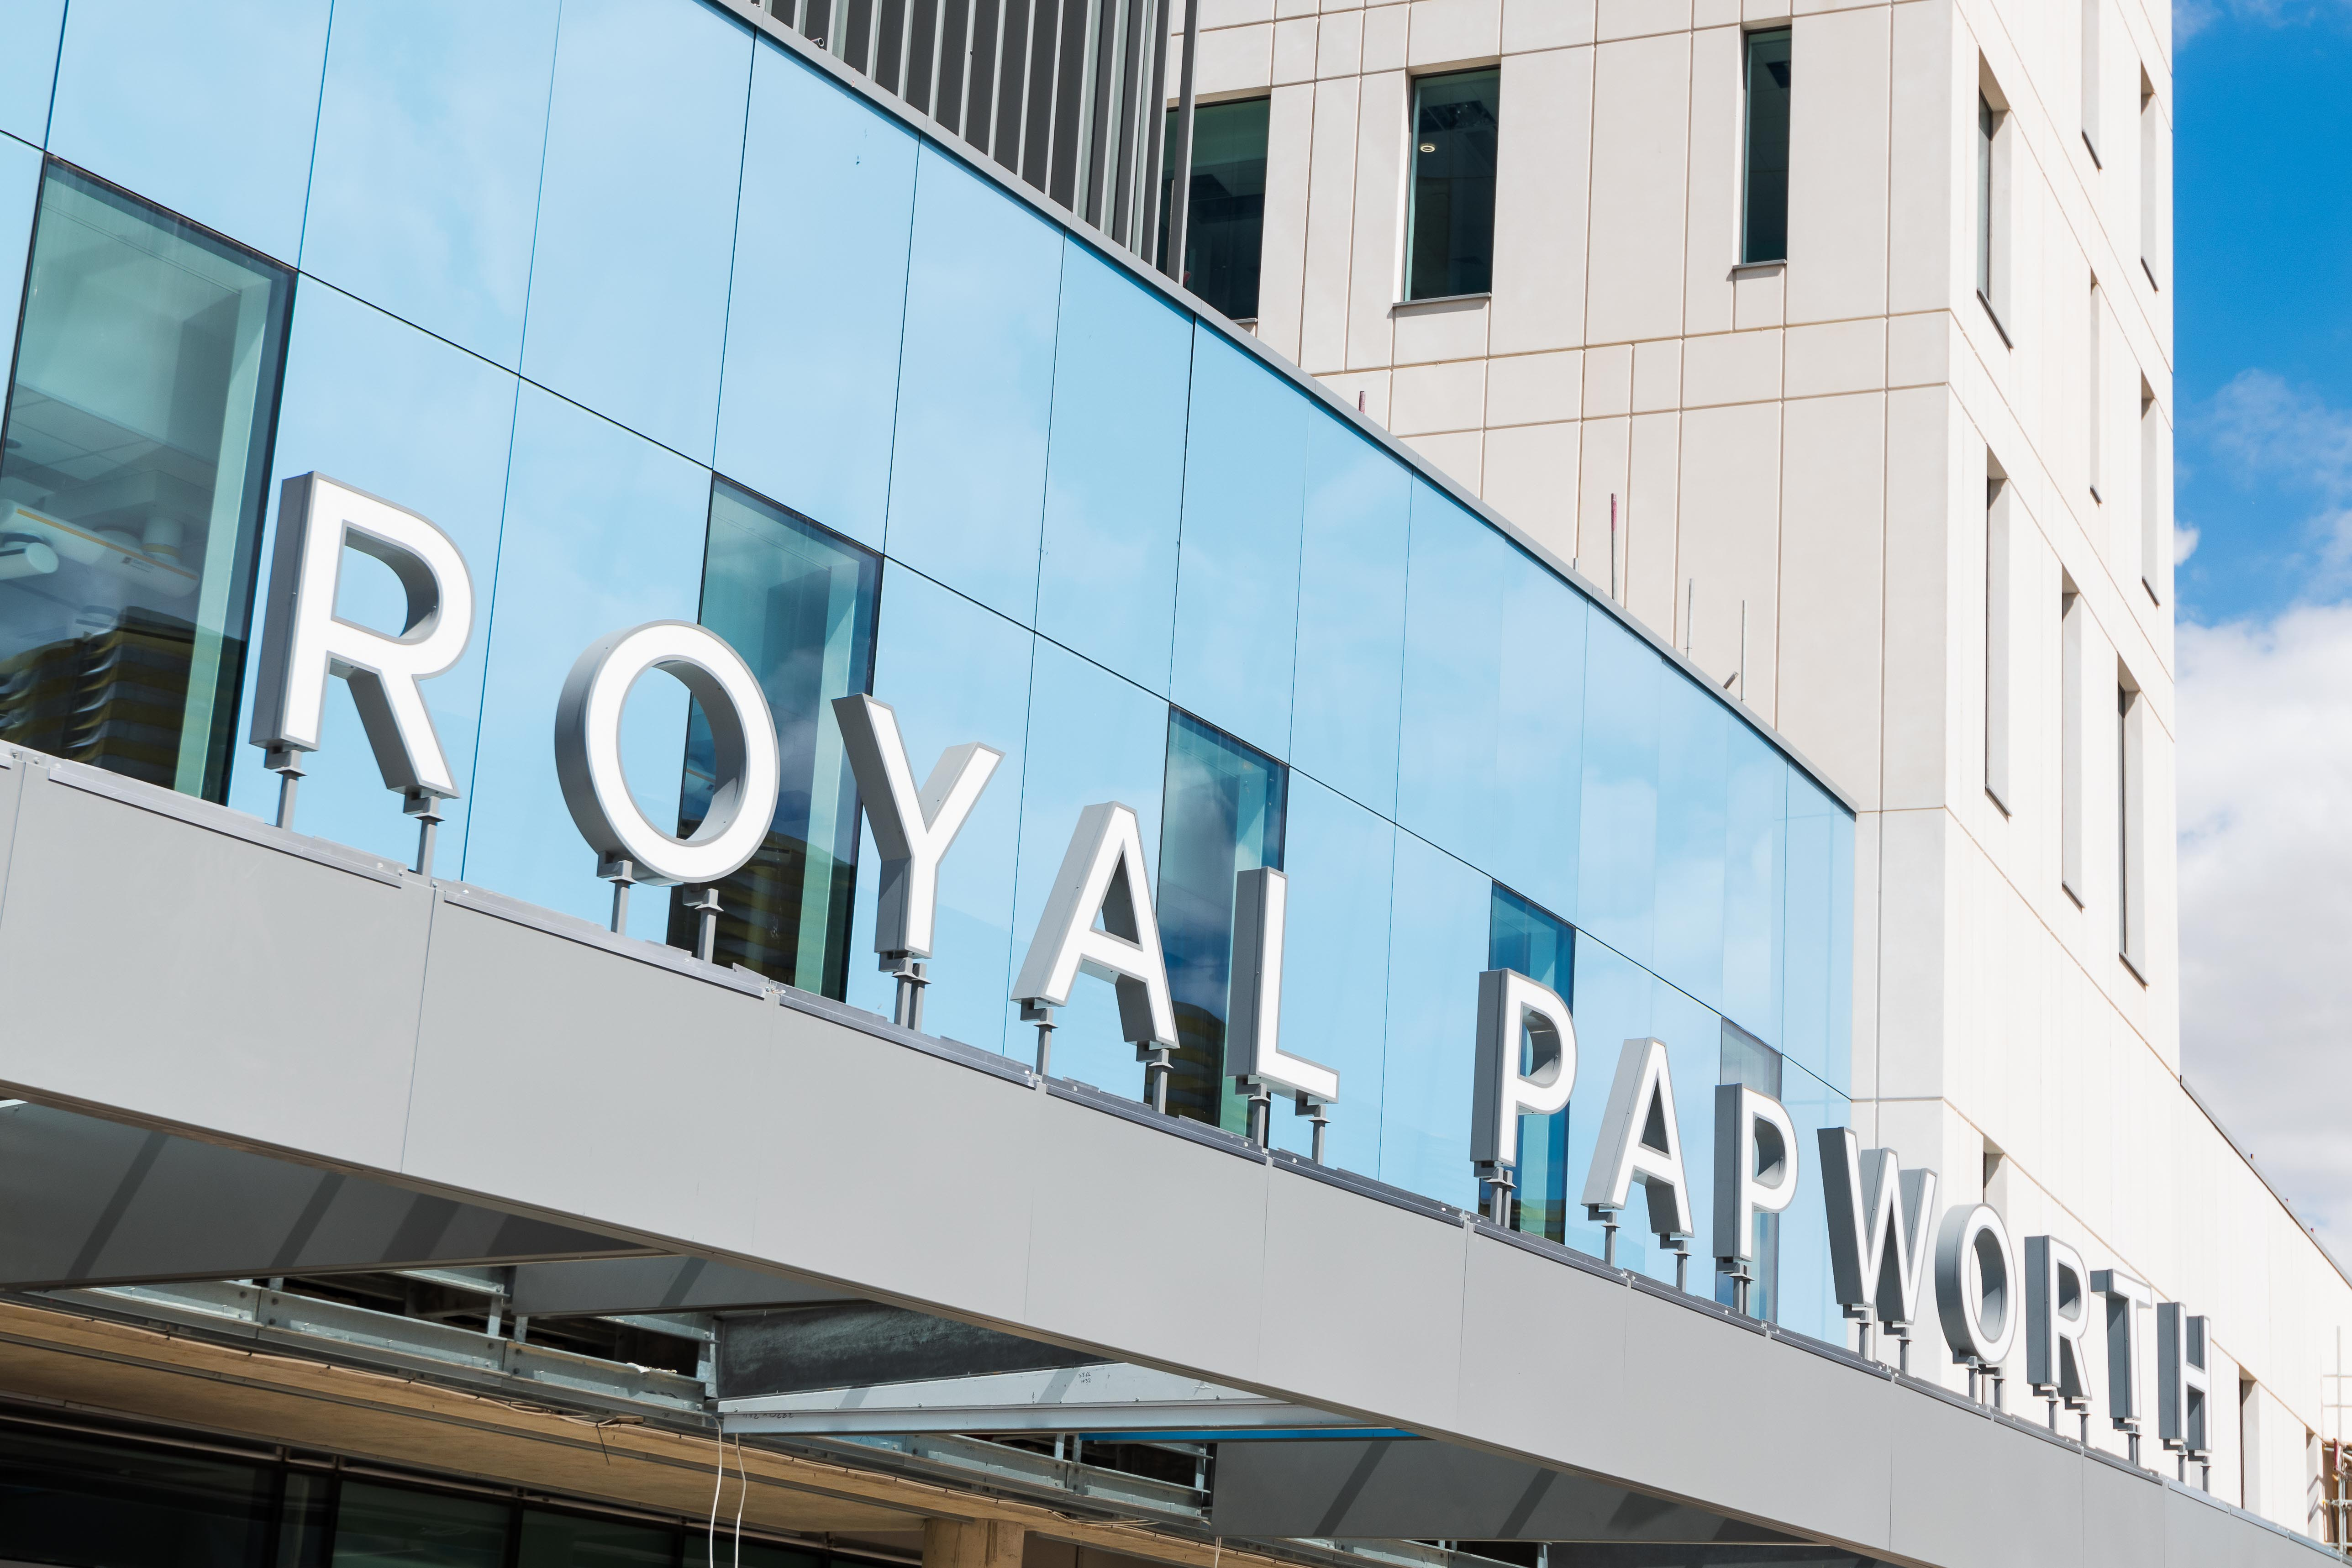 External view of Royal Papworth Hospital showcasing xsign signage